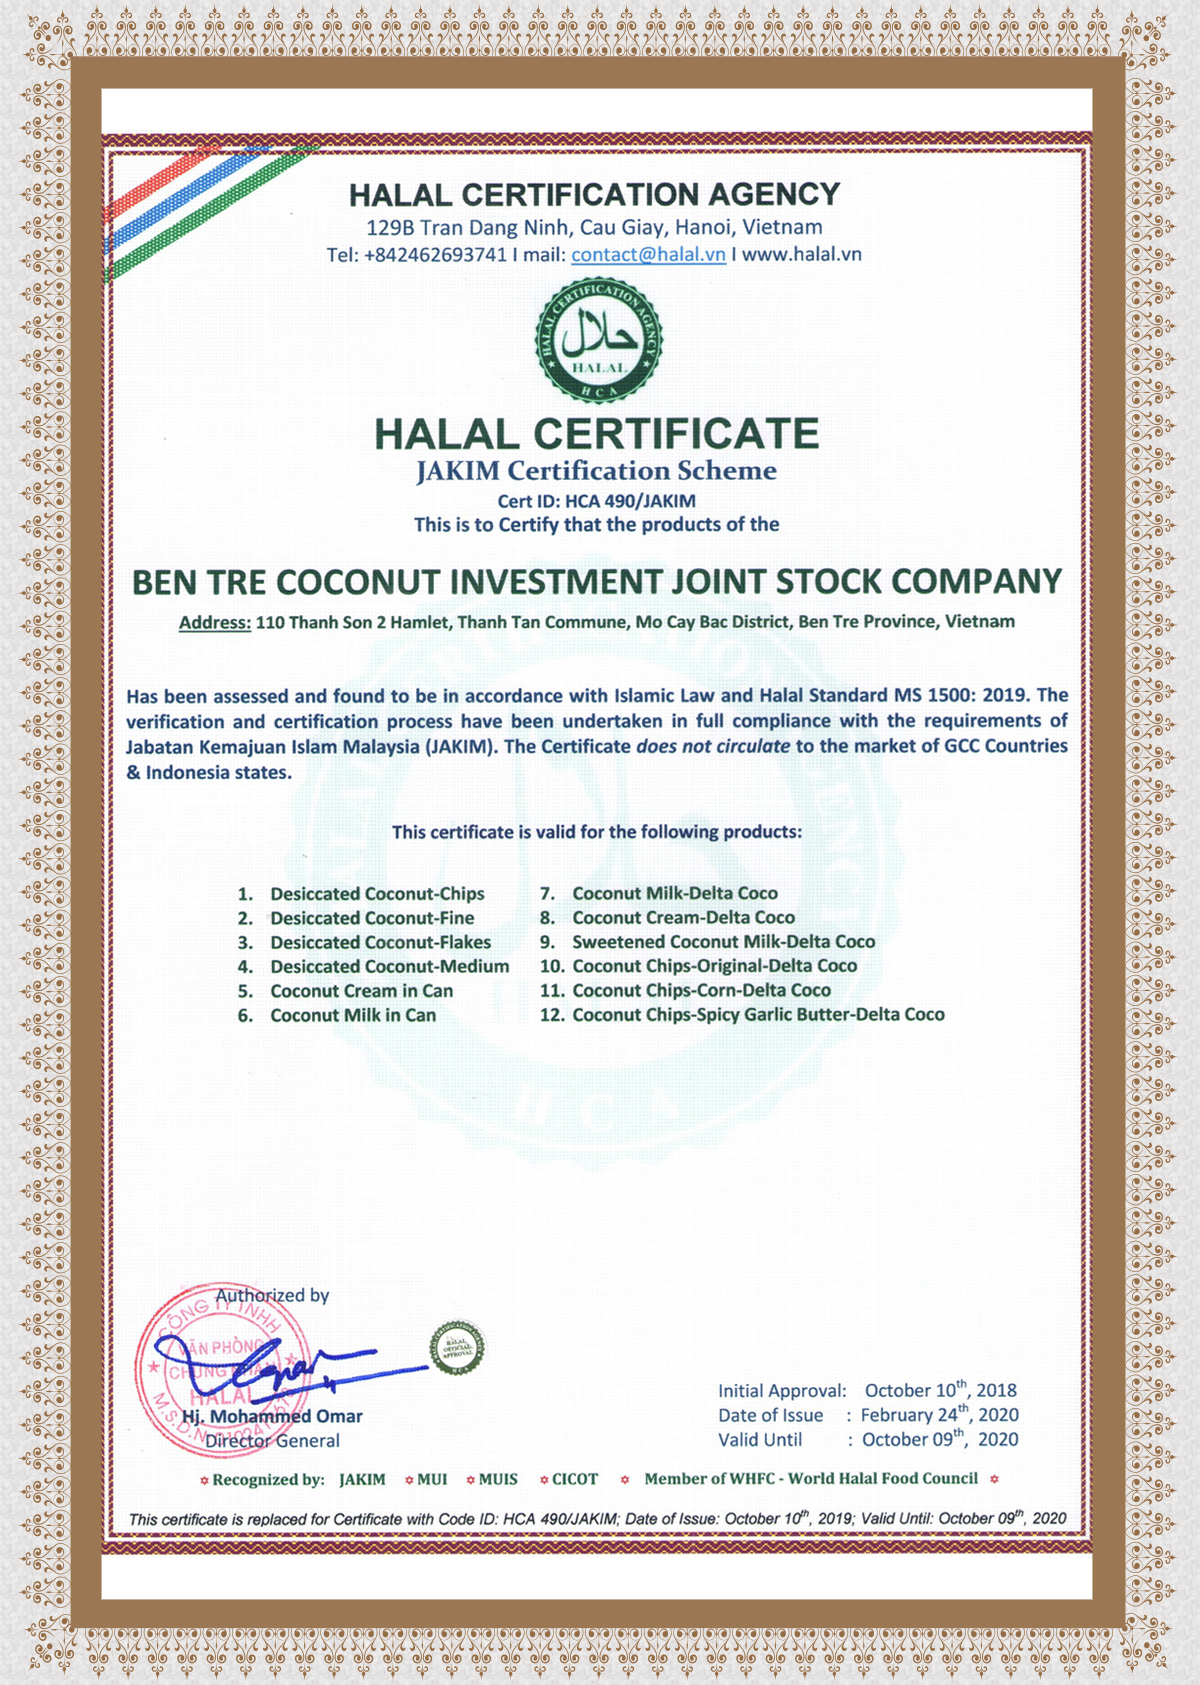 HALAL CERTIFICATION (JAKIM)